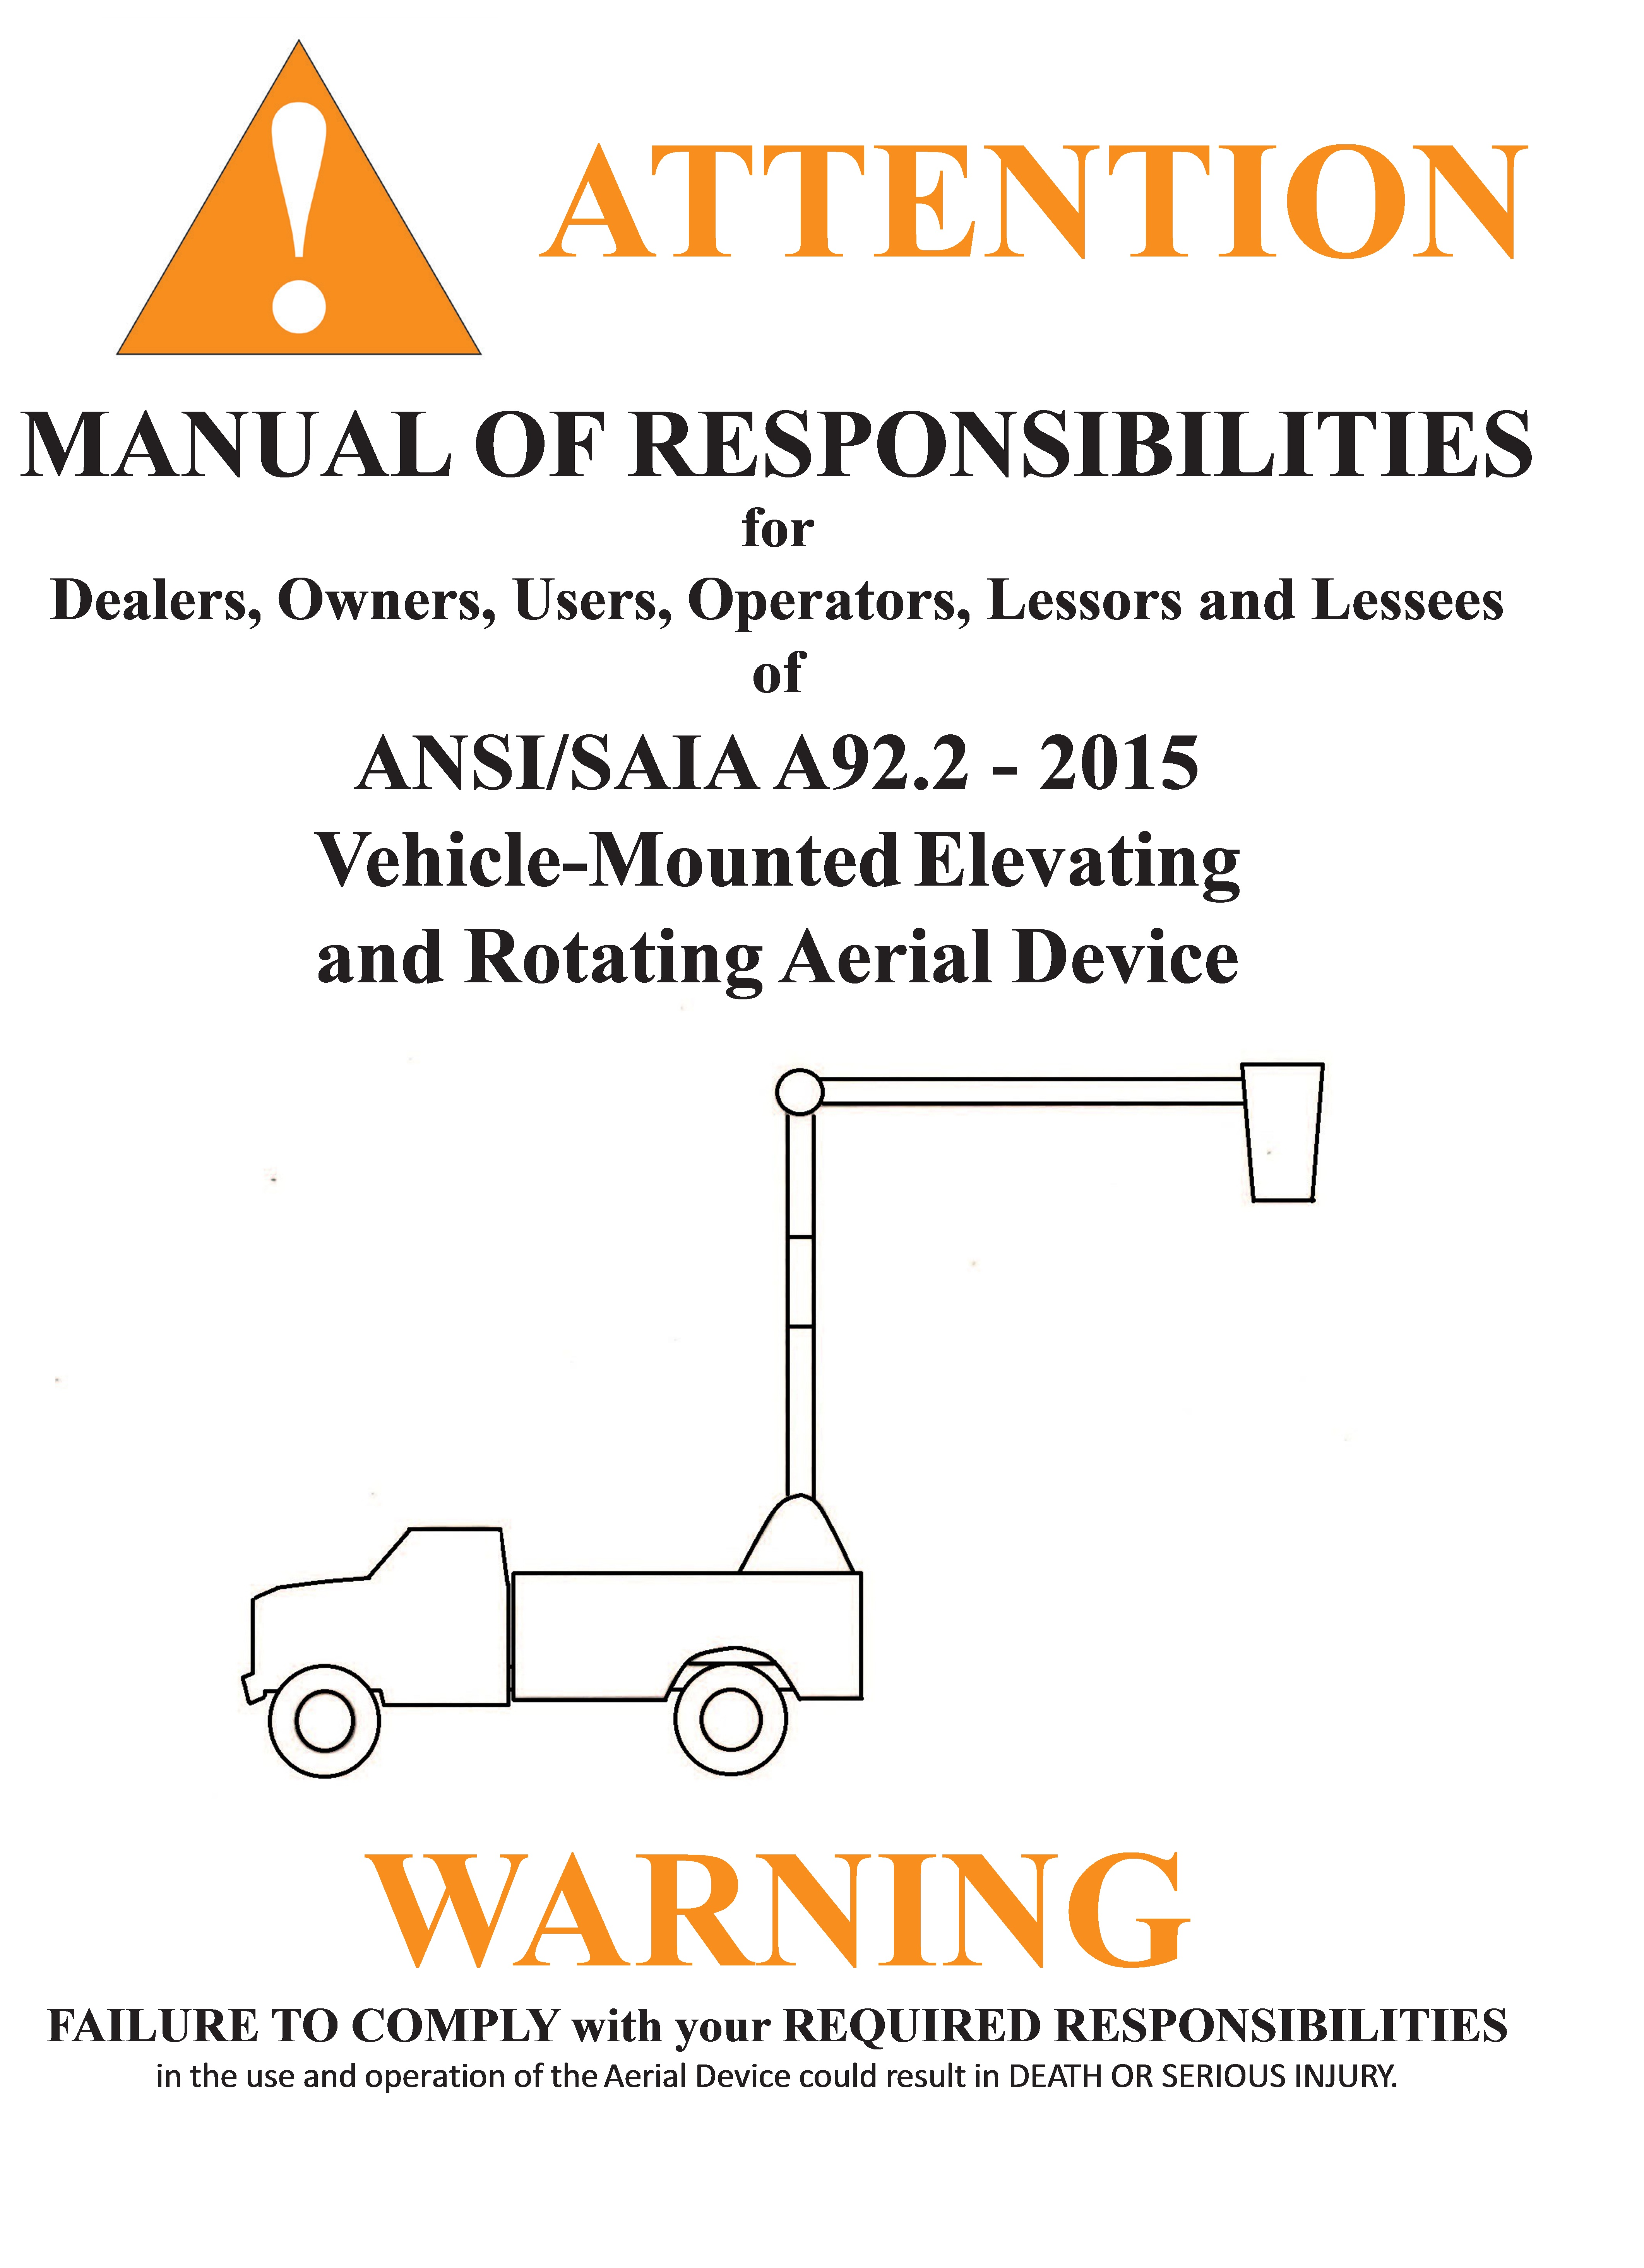 Manual of Responsibilities for Vehicle-Mounted Elevating and Rotating Aerial Devices [MRA92.2-2015]  manual, ansi, saia, platform aerial, devices, rotate, elevate, responsbilities, a92.2,